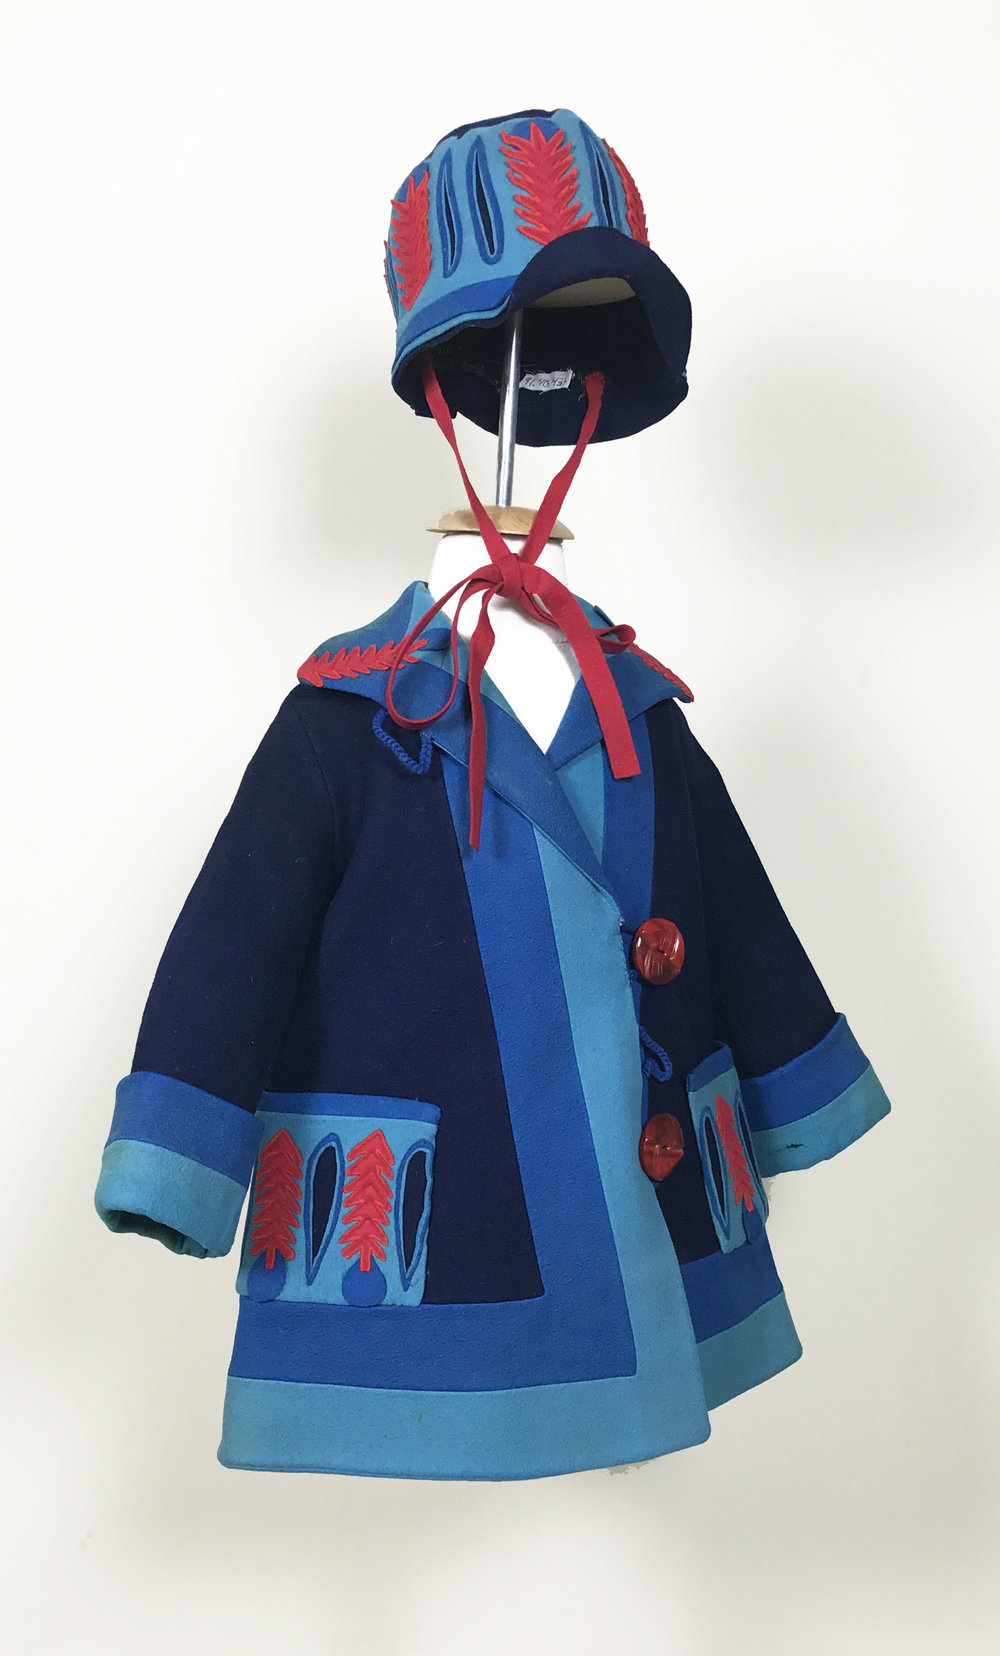 Girl's Jacket and Hat Ensemble, c. 1920s,Ars Lenci, Made in Italy, Torino, New-York, Paris, London, Manchester, wool and cotton, Collection of The Grace Museum, Gift of Ms. Martha Pender.